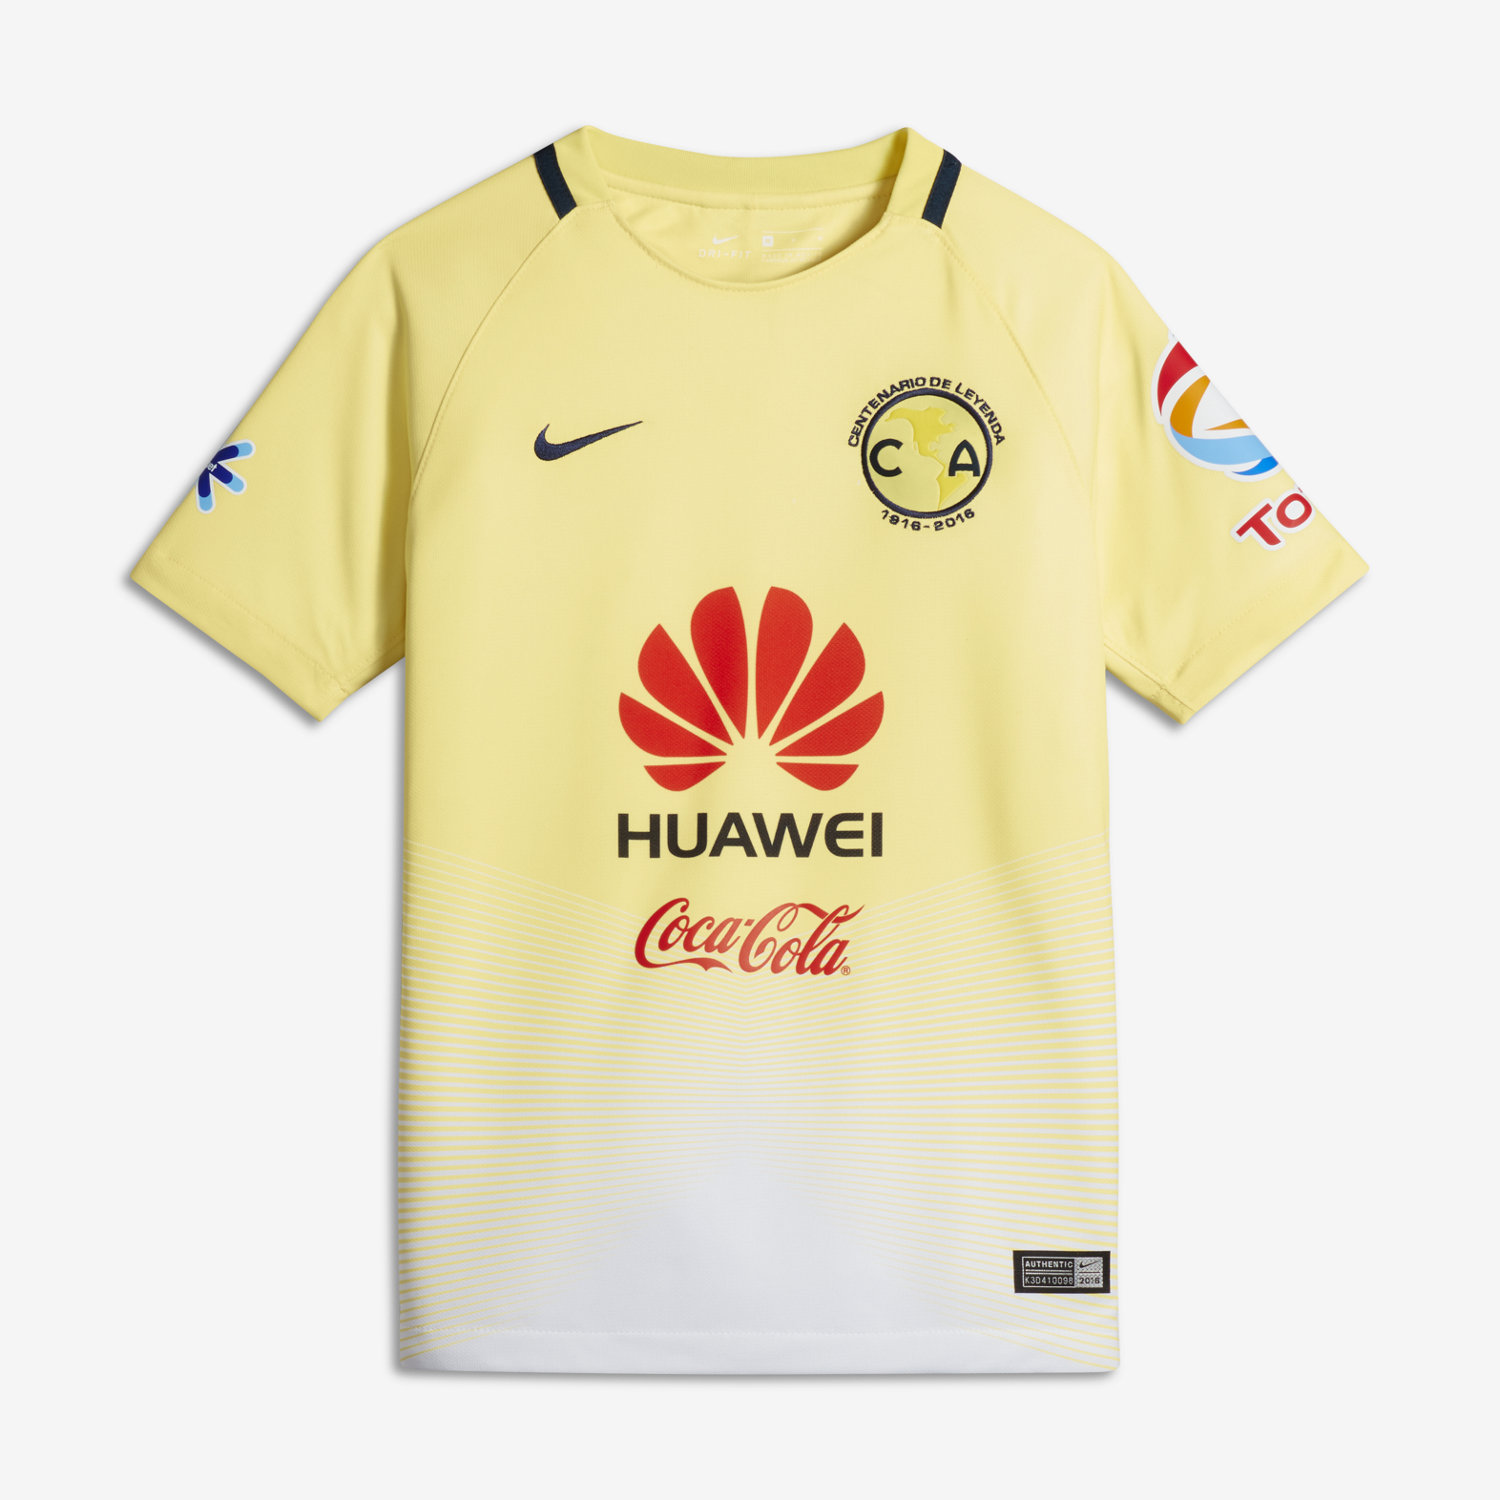 newest 6d94d 3f197 Nike Club America Home Jersey Youth 2016/17 - Yelw